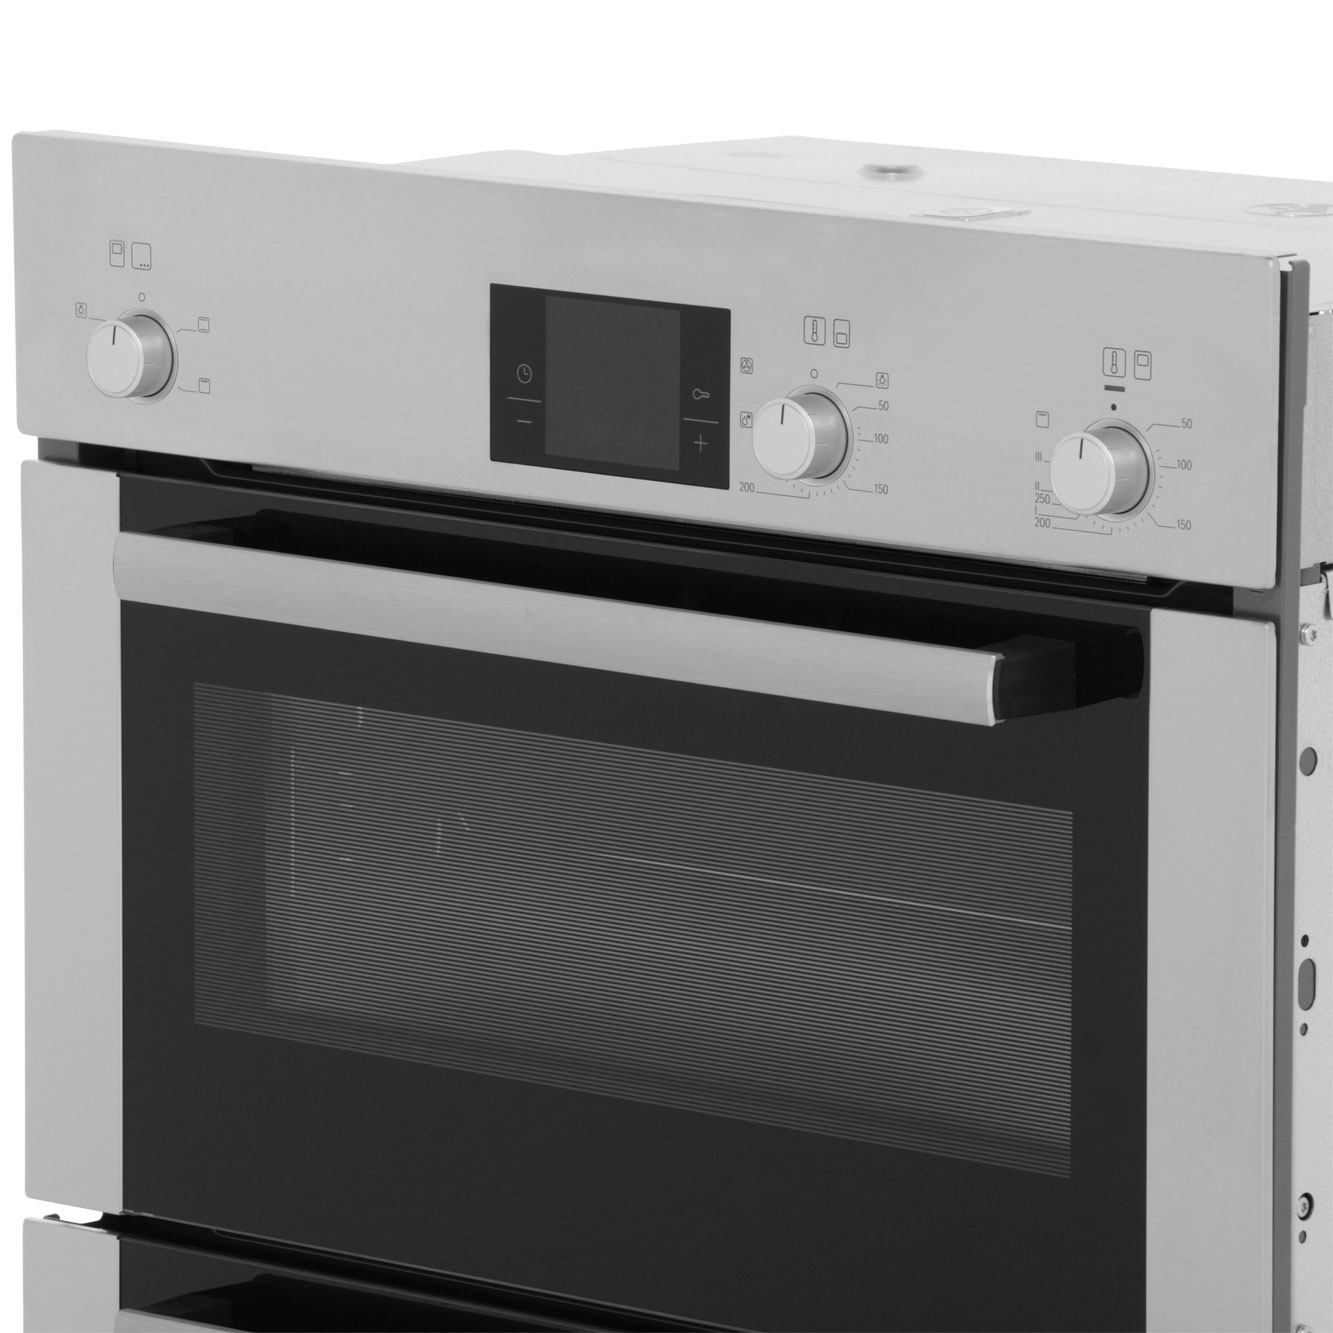 Bosch double under counter oven